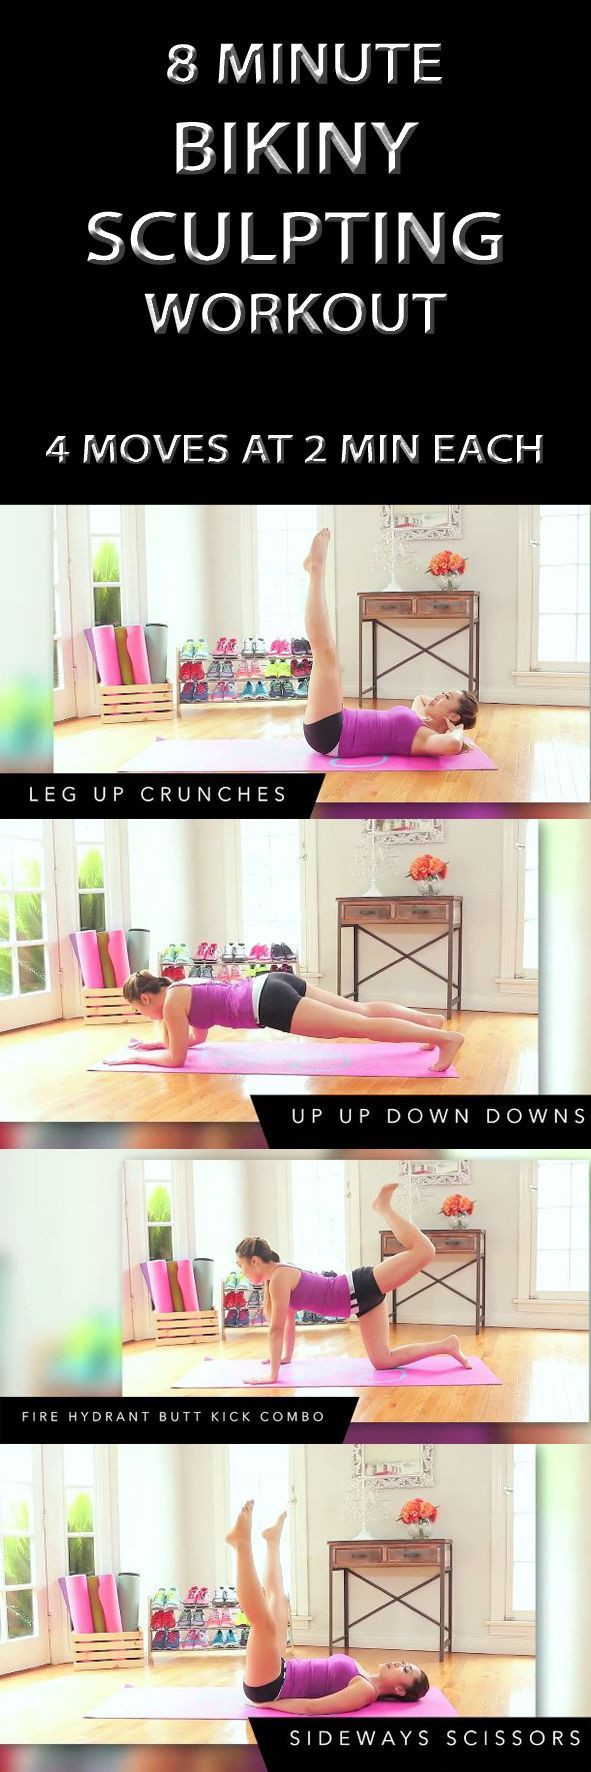 .8 MINUTE BIKINY SCULPTING WORKOUT will flatten your abs, perk up your chest, tone up your shoulders and upper body, slim your thighs, and lift your booty! It's 4 moves at 2 min each. Get ready for a real total body burn!